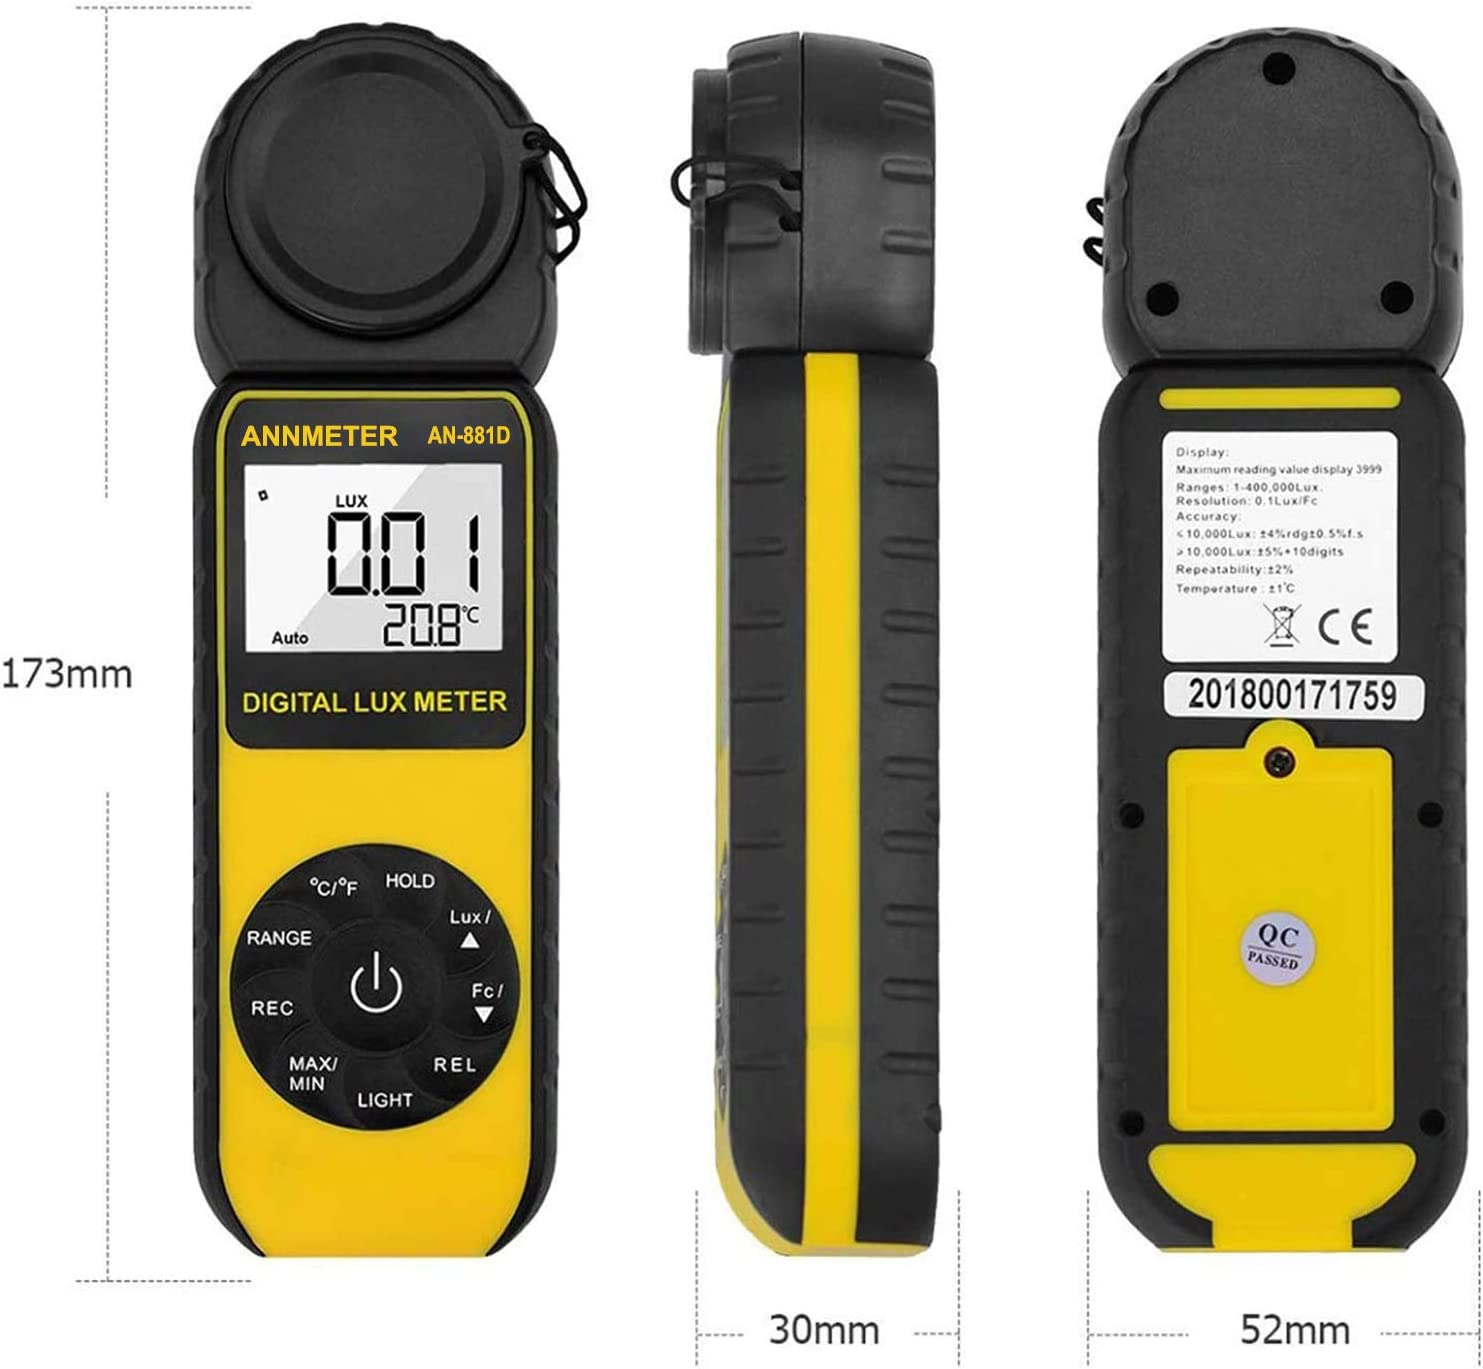 Lumen Tester with 270/° Rotatable Detector for Outdoor Planting Photography 0.1~400,000 Lux Meter AN-881D Handheld Light Calibrator ANNMETER Digital Illuminance Meter